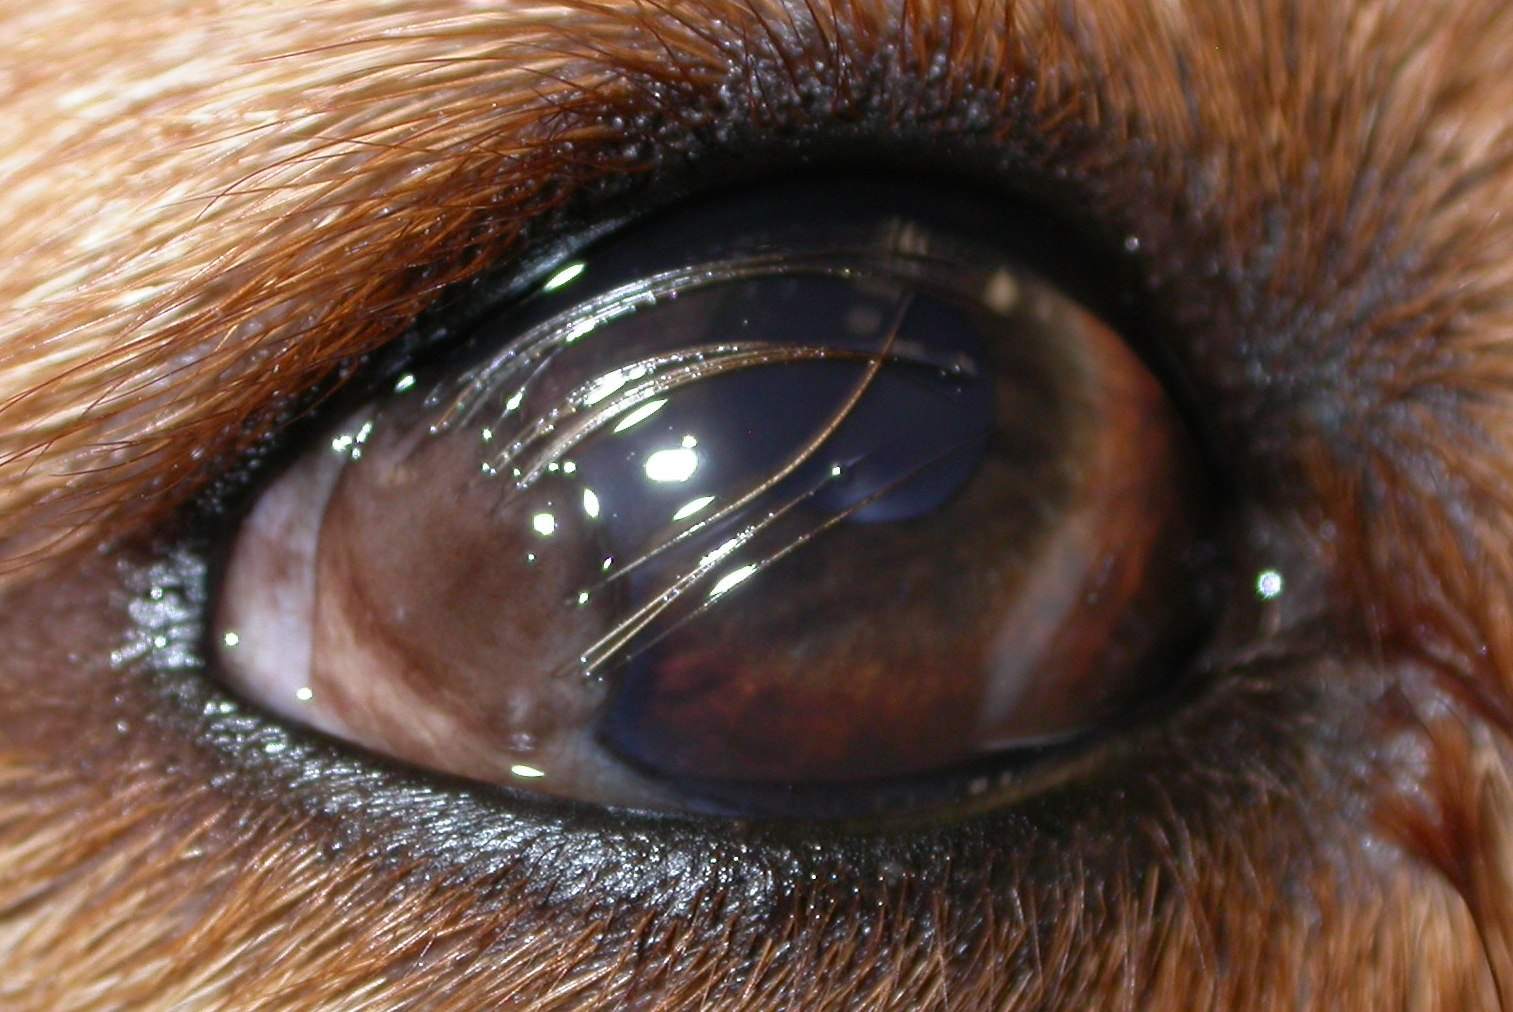 Eye problems with labrador retrievers